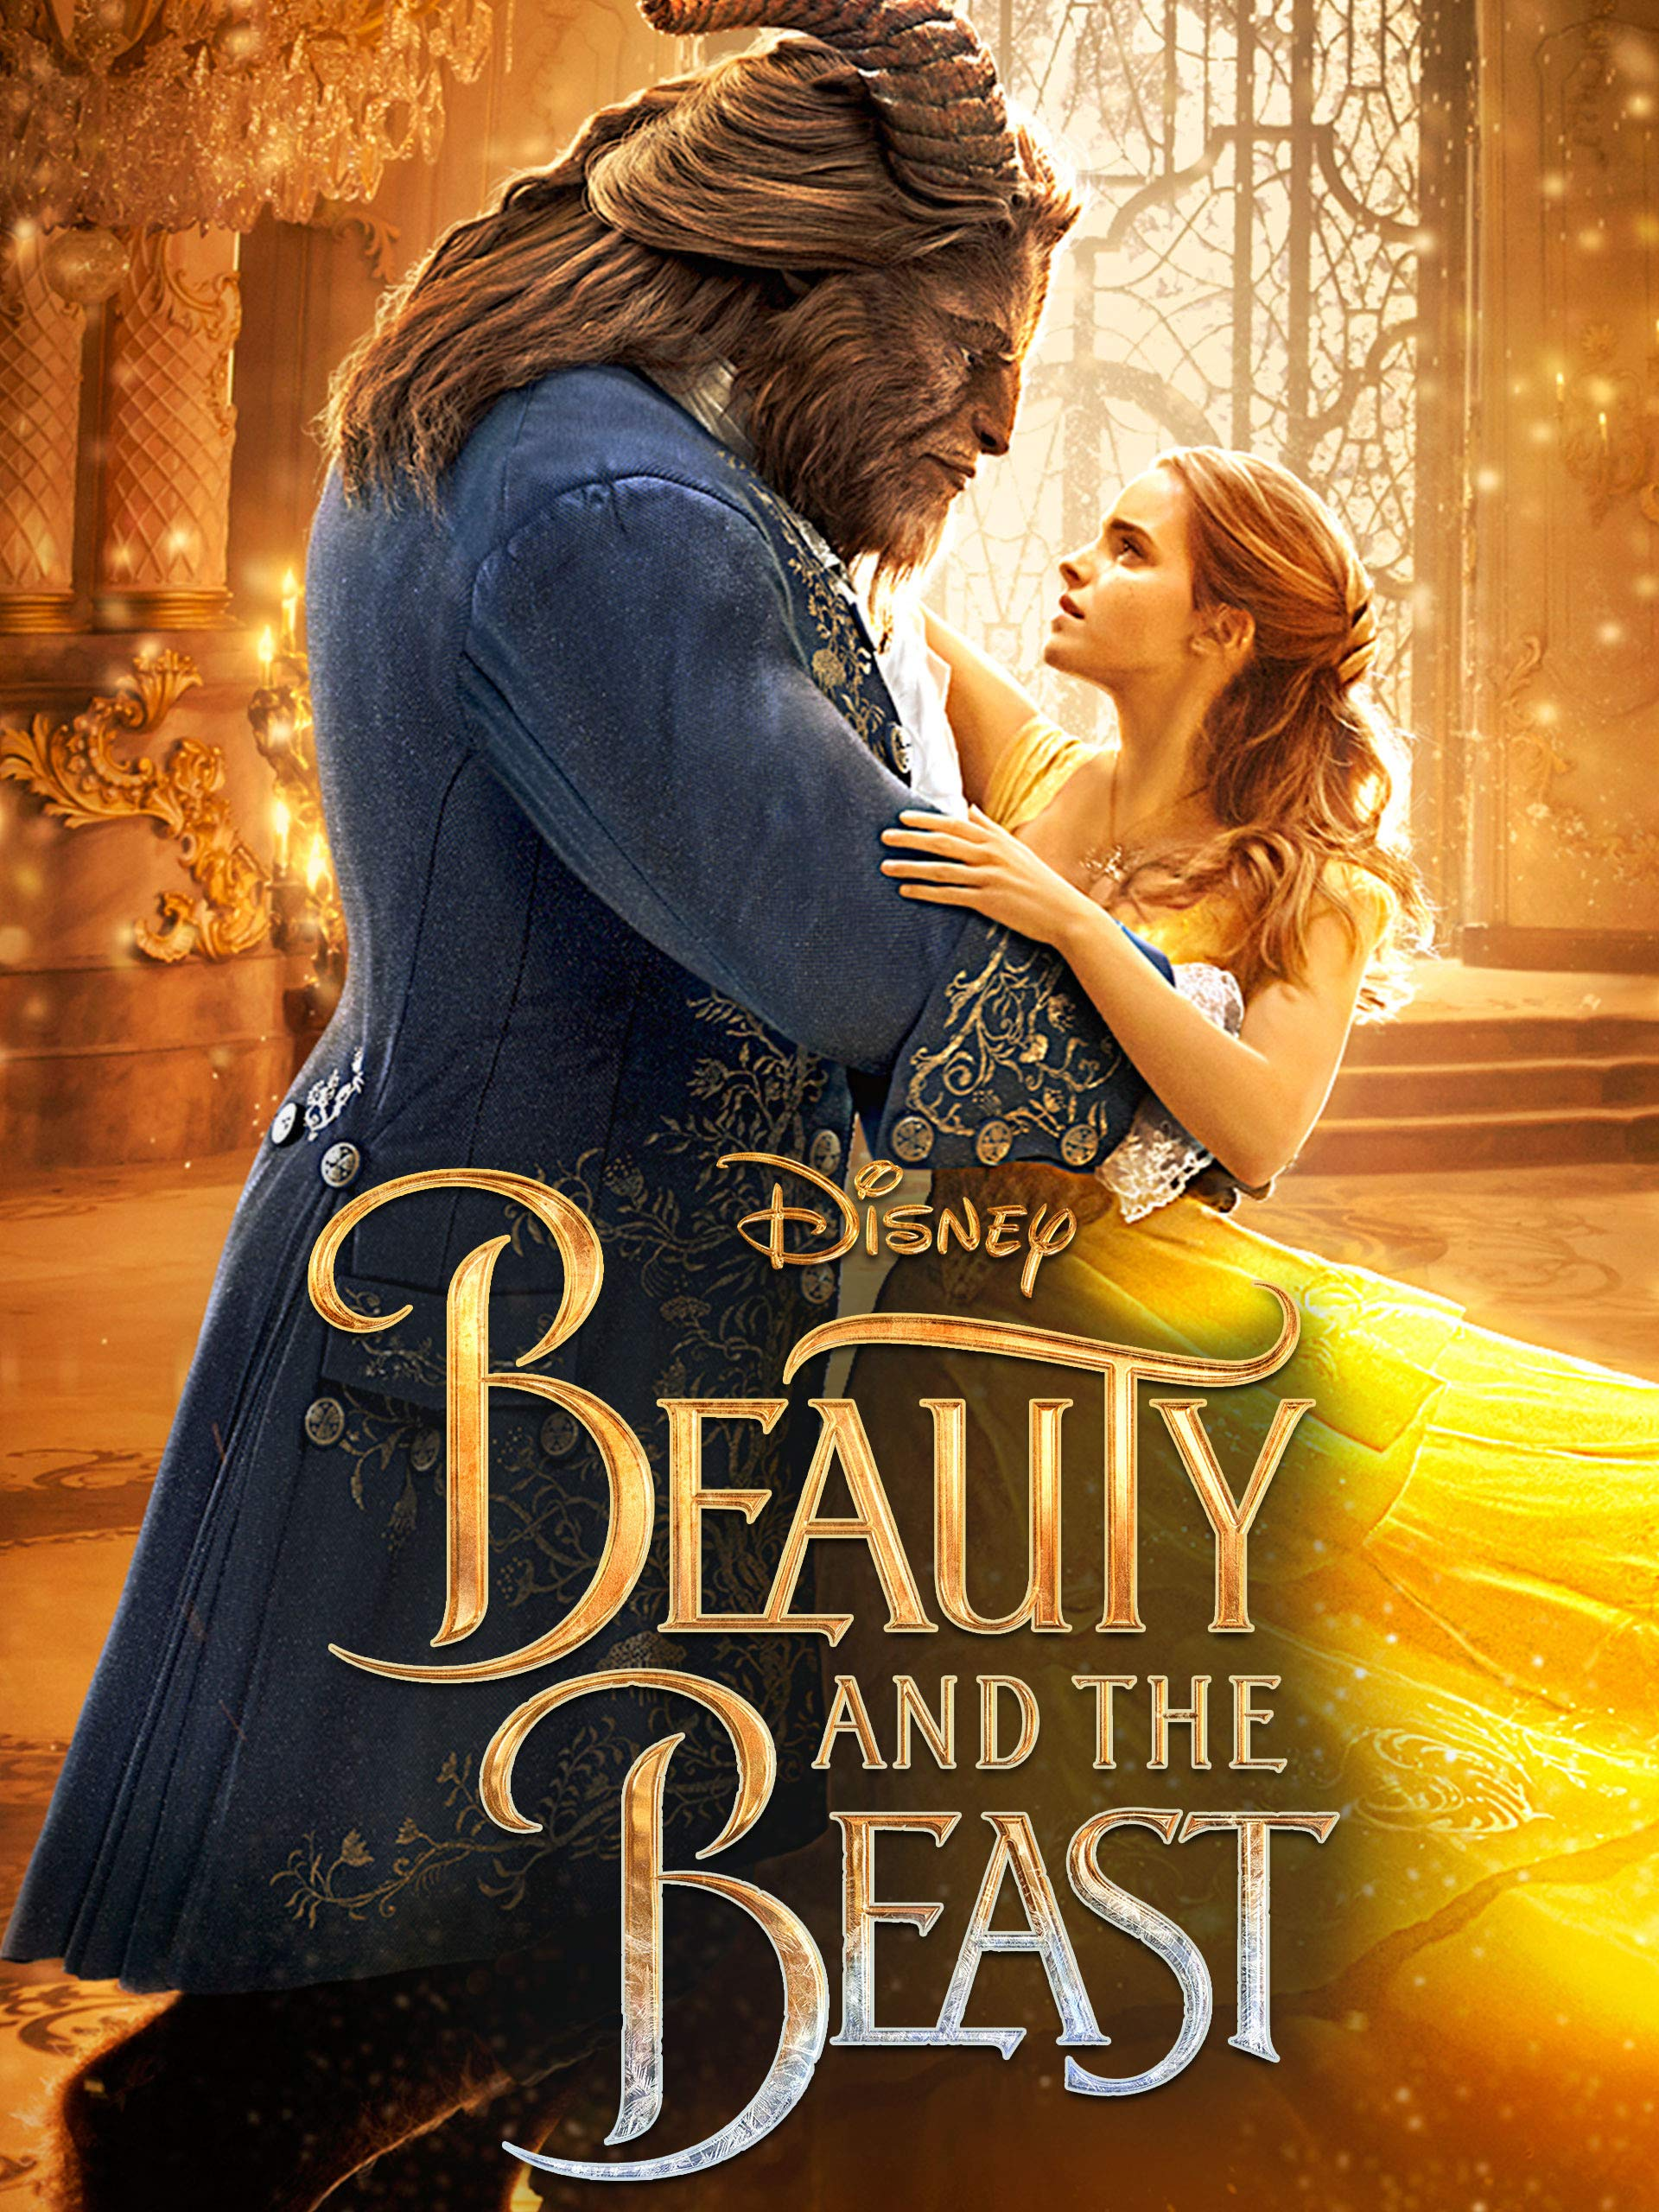 Beauty and the Beast (2017, PG)